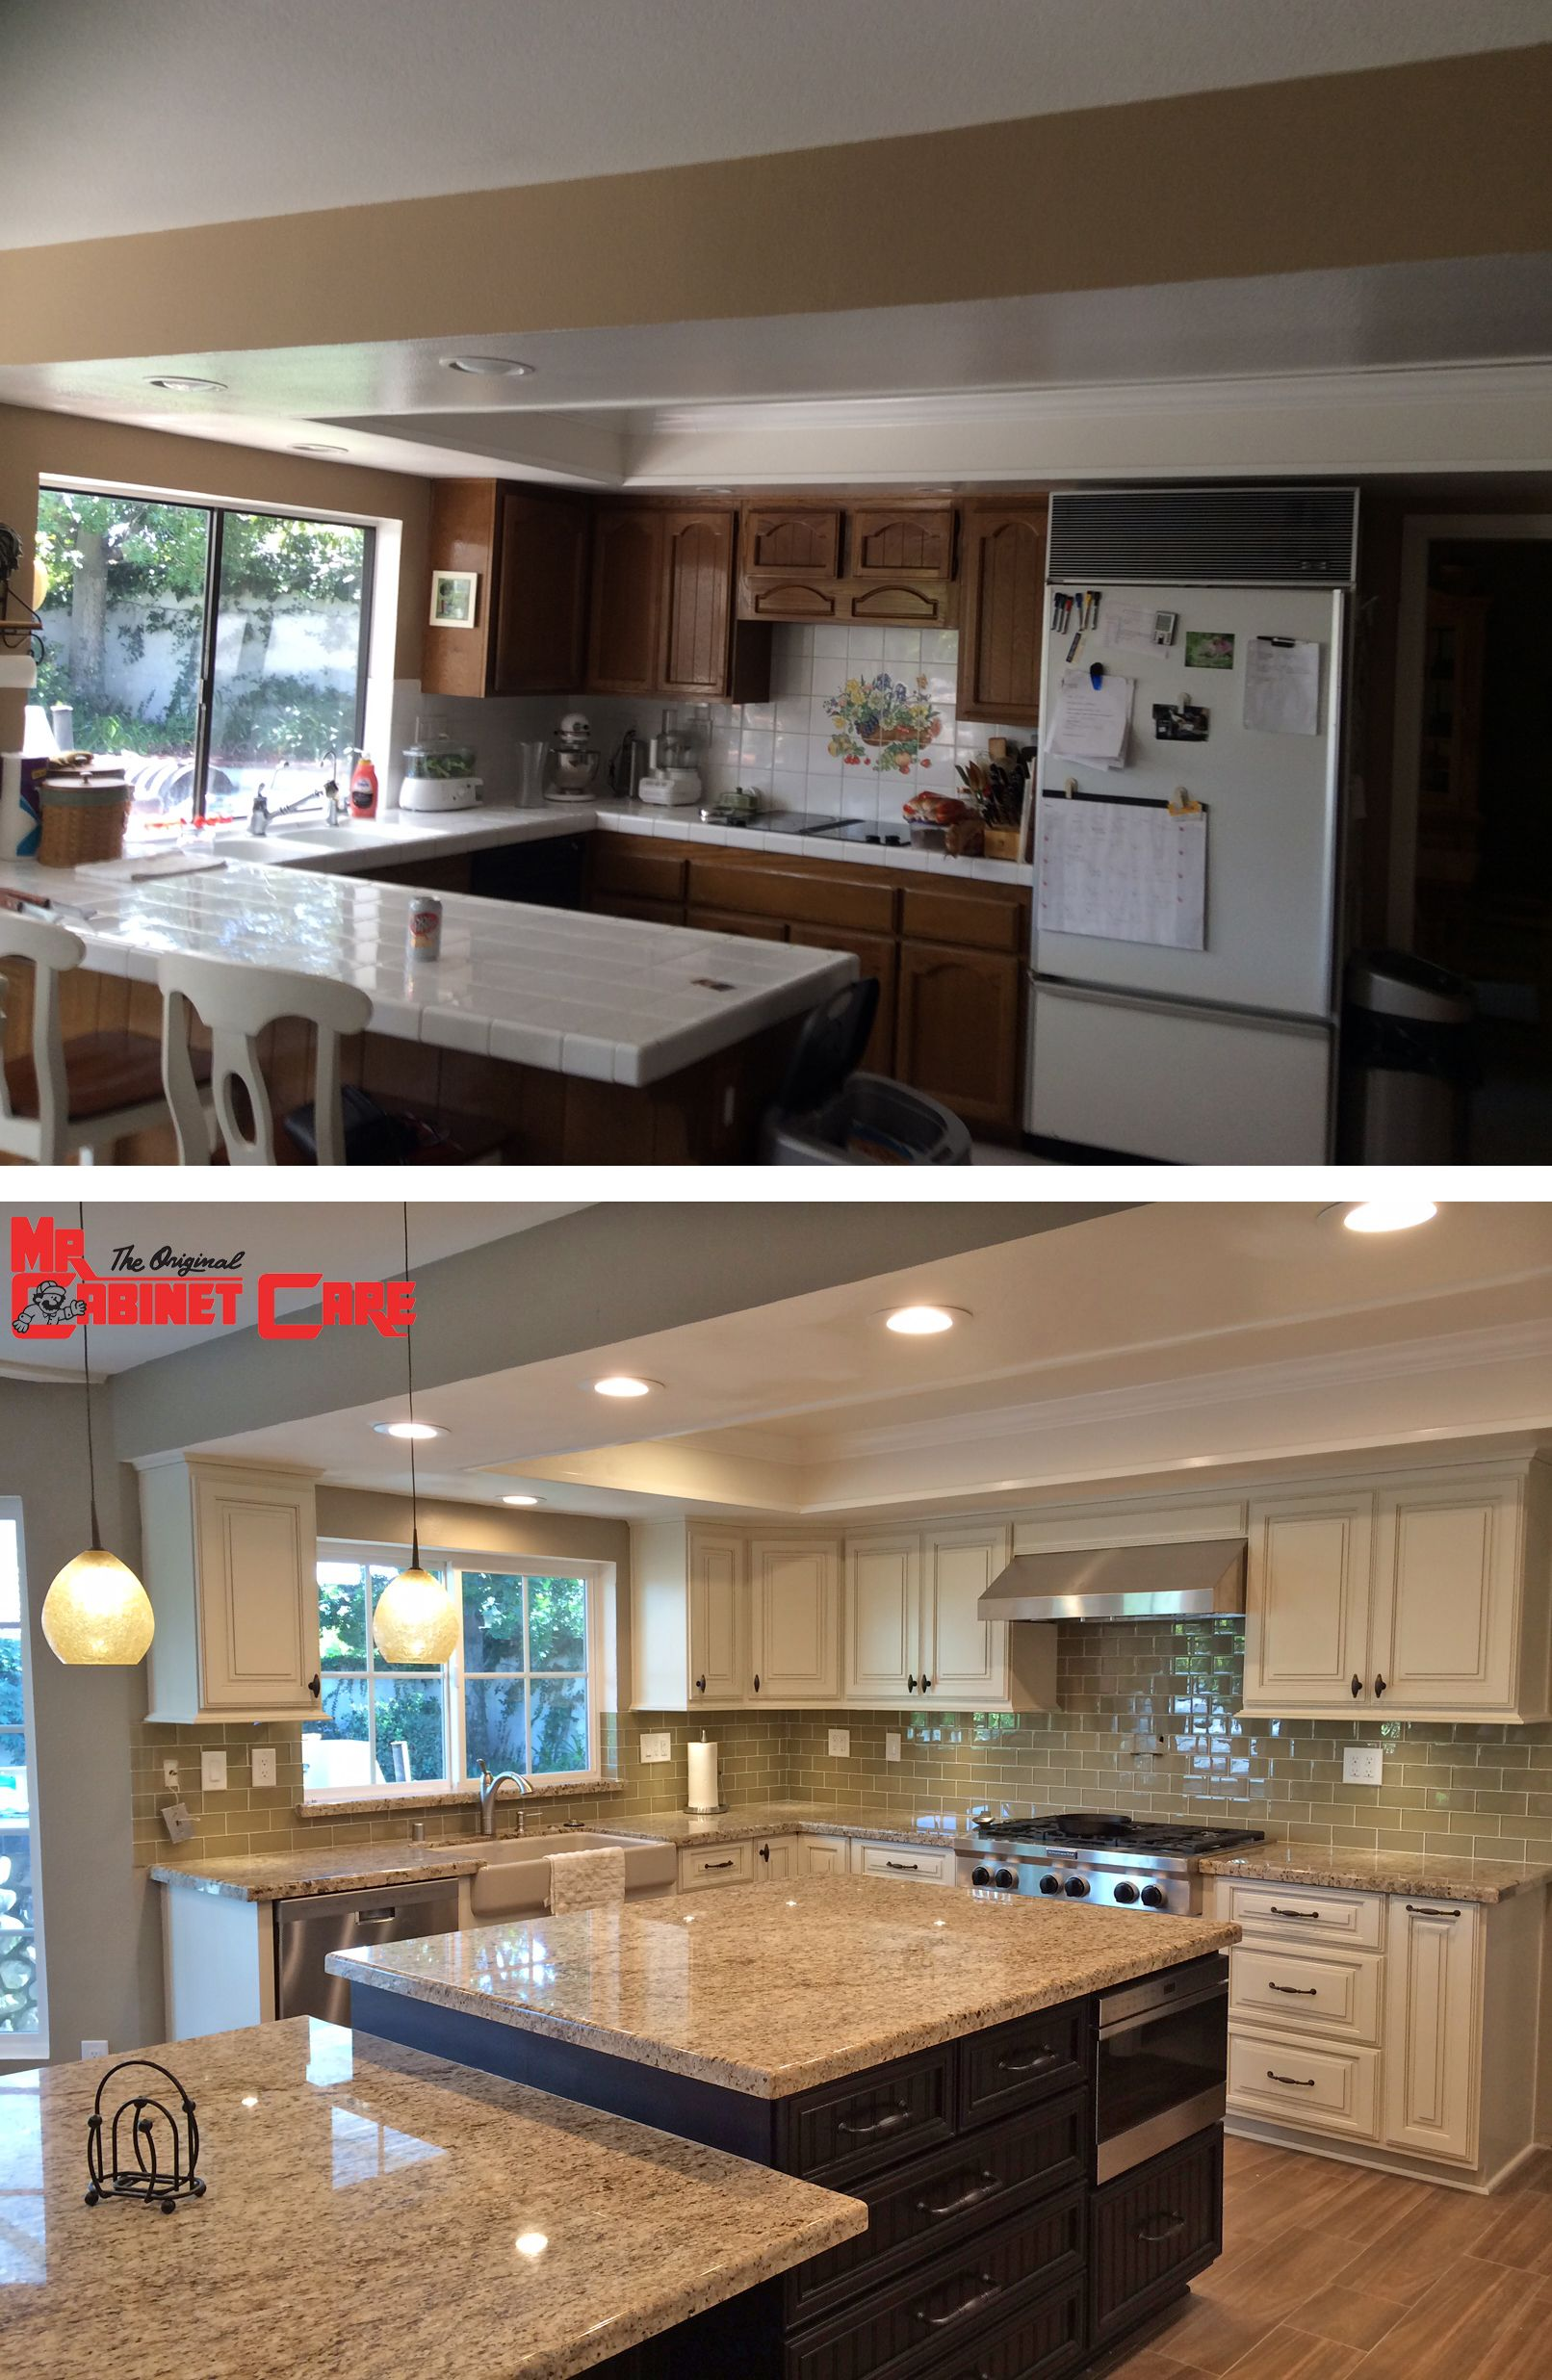 Before After Of A Kitchen Remodel In Yorba Linda Ca Kitchen Kitchenremodeling Kitchen Renovation Before After Kitchen Kitchen Remodel